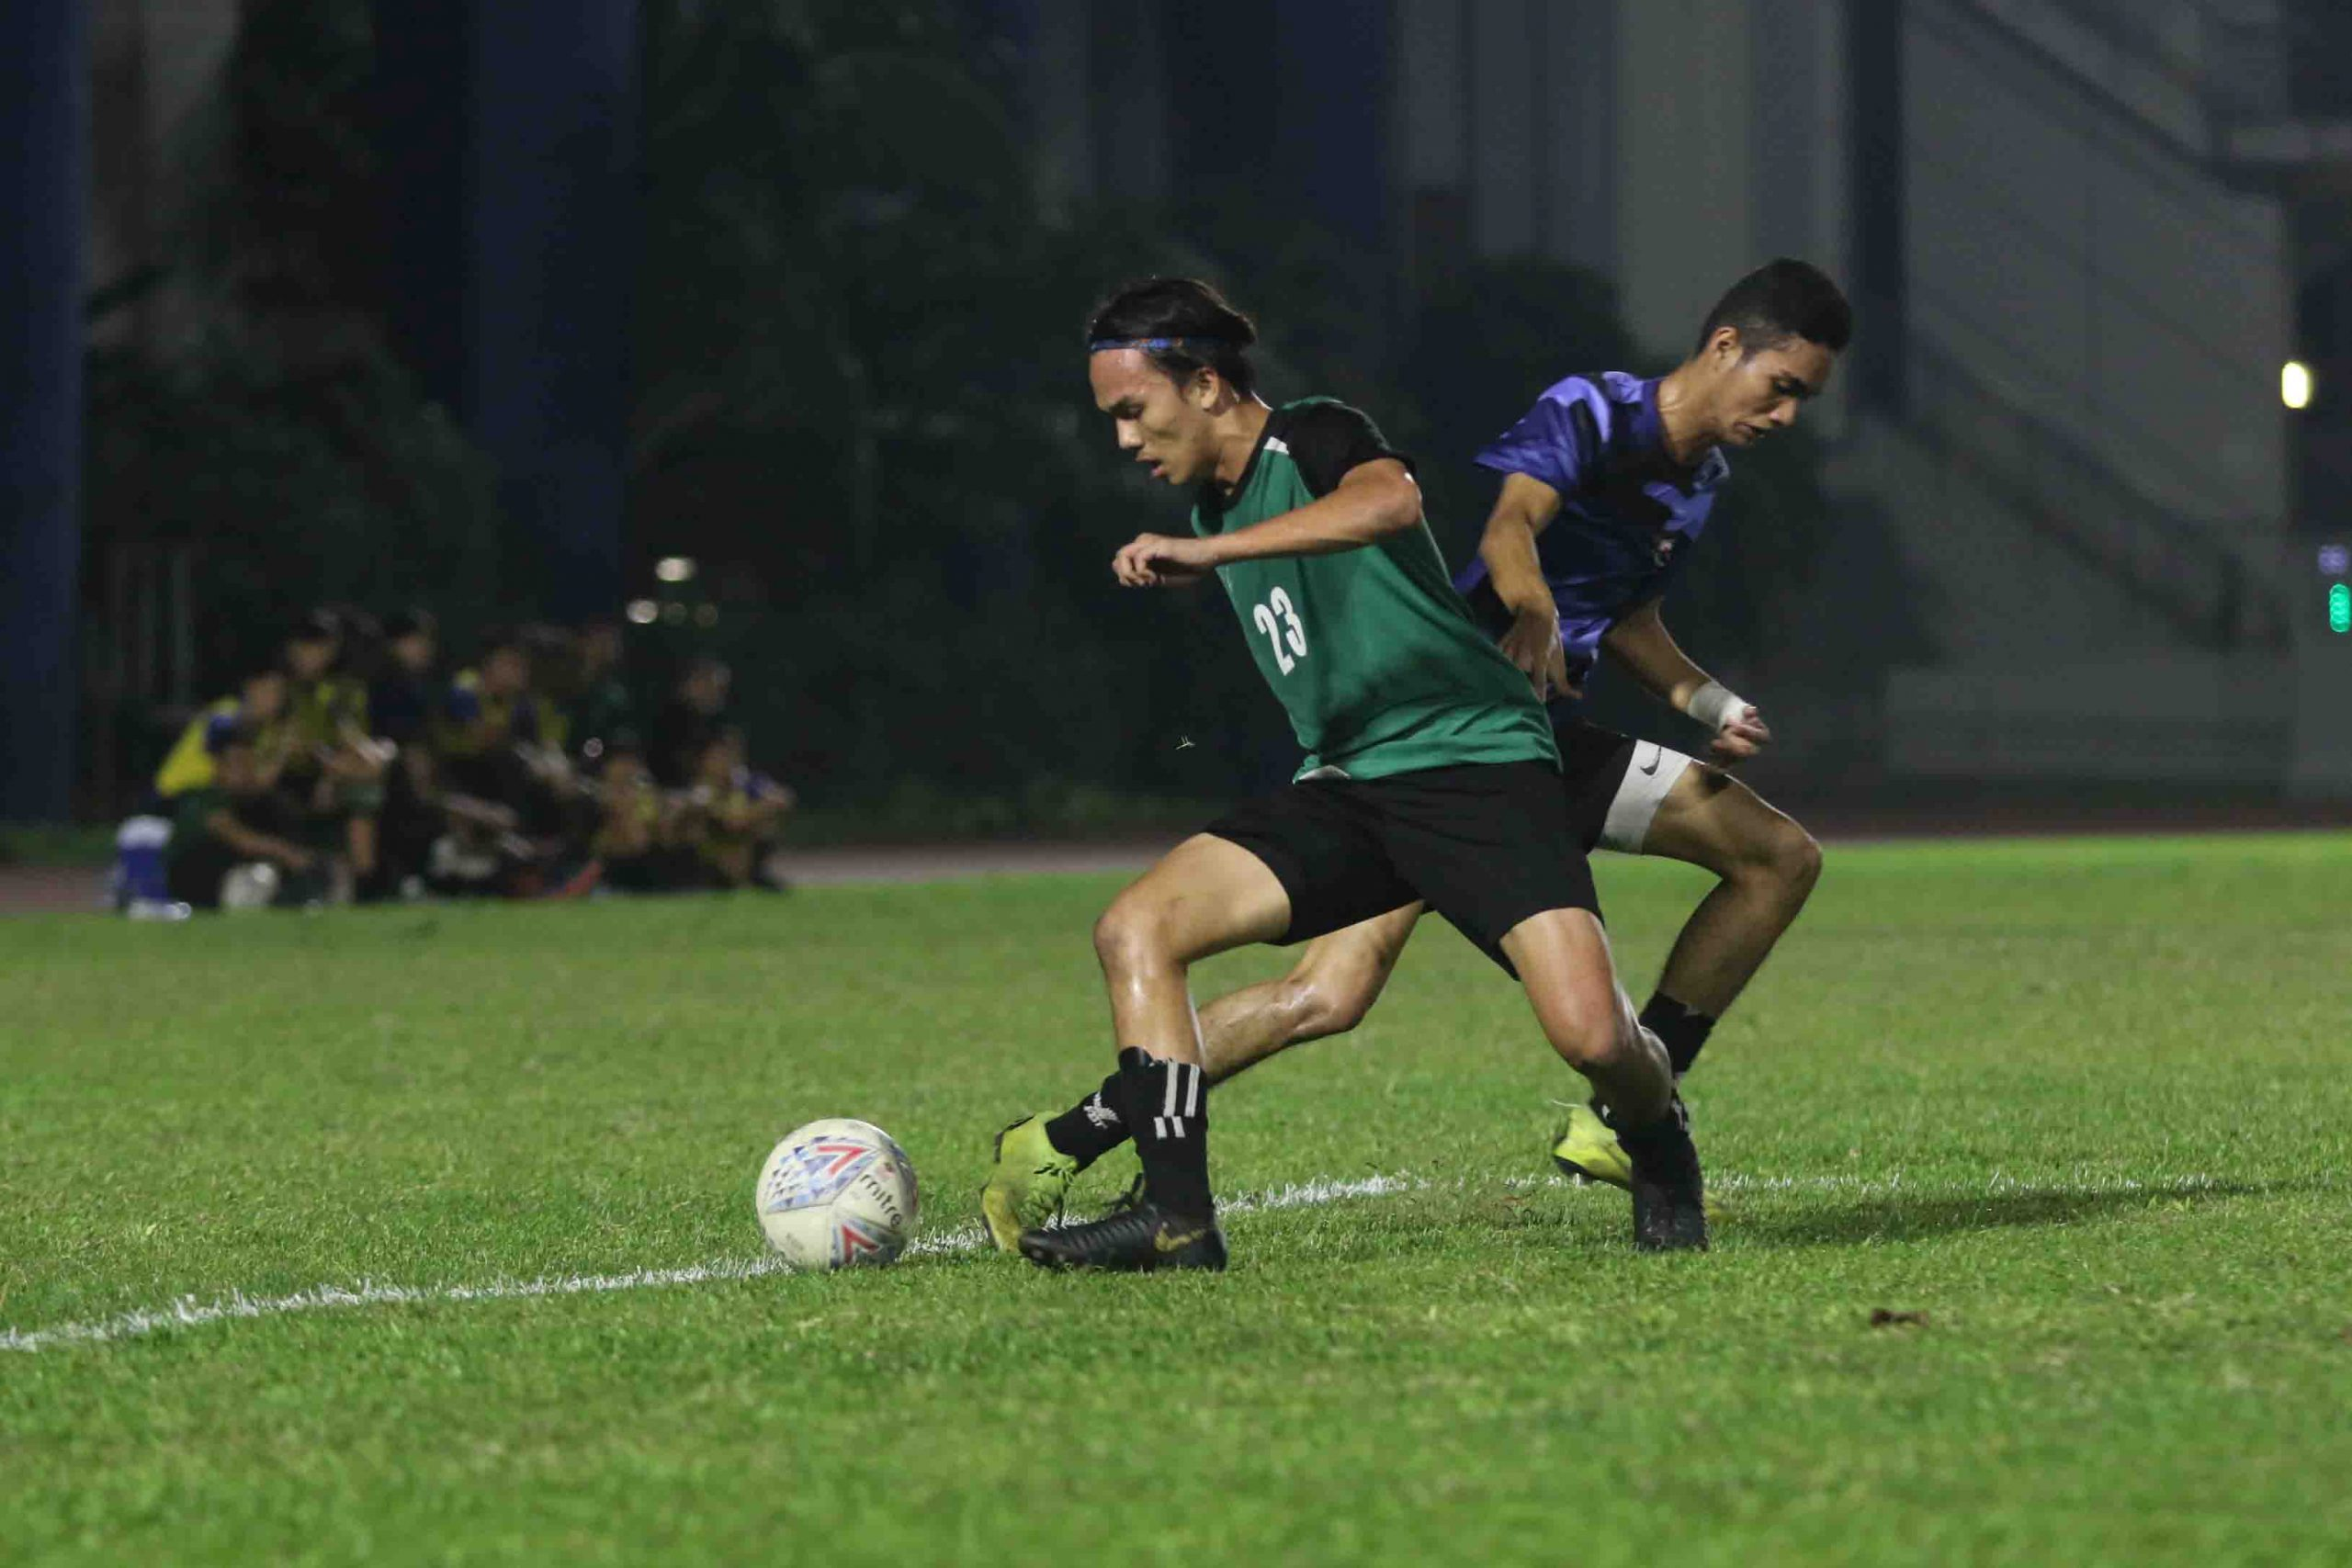 ITE earns hard fought 2-0 win over RP in POL-ITE fixture. (Photo 9 © Clara Lau/Red Sports)